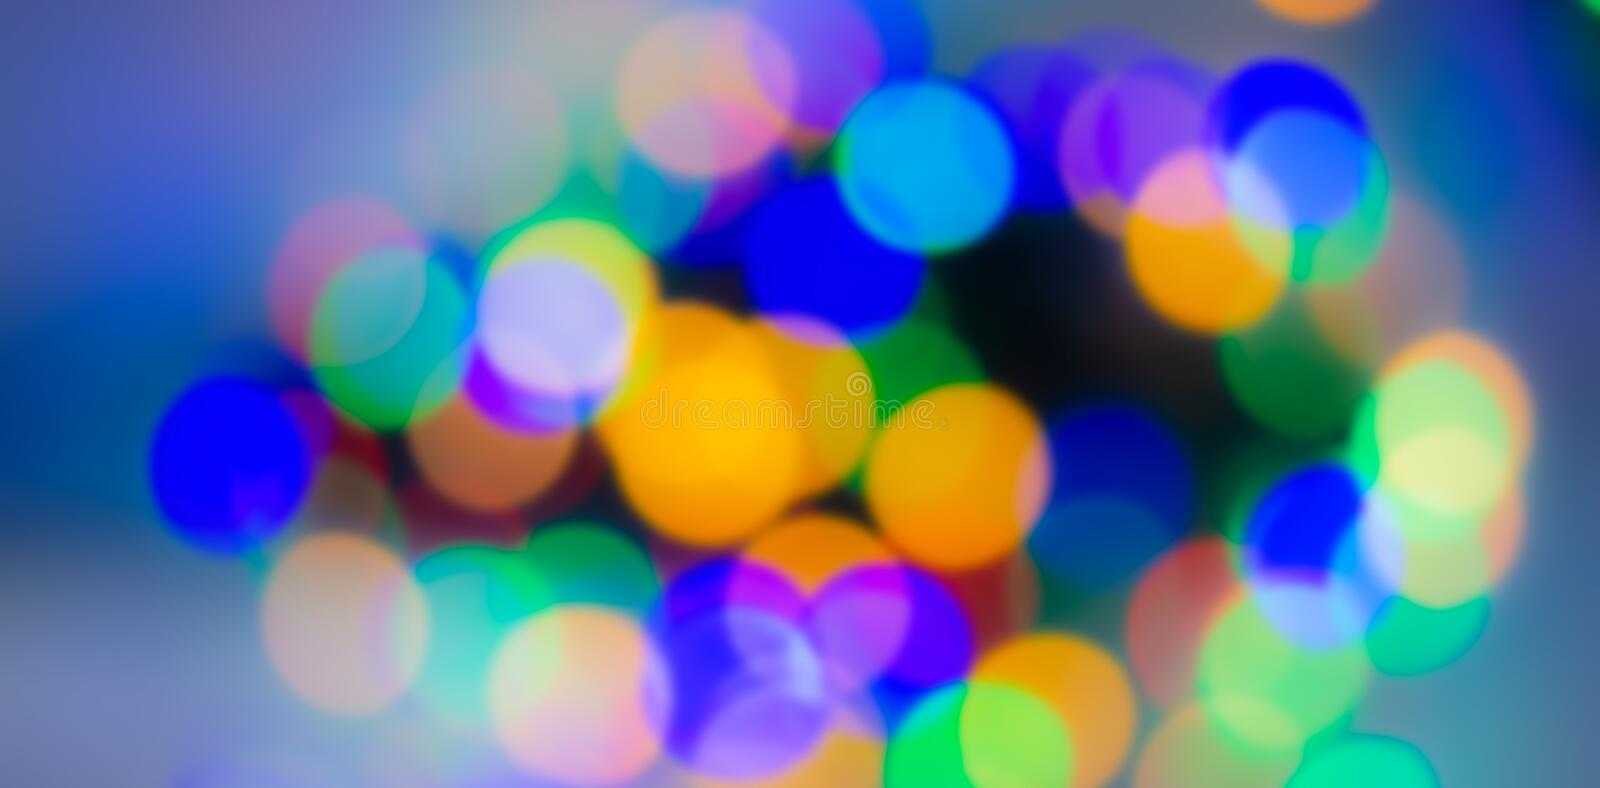 abstract blurred background, spots of light-blue, green, yellow, orange, pink. Web banner. stock photography